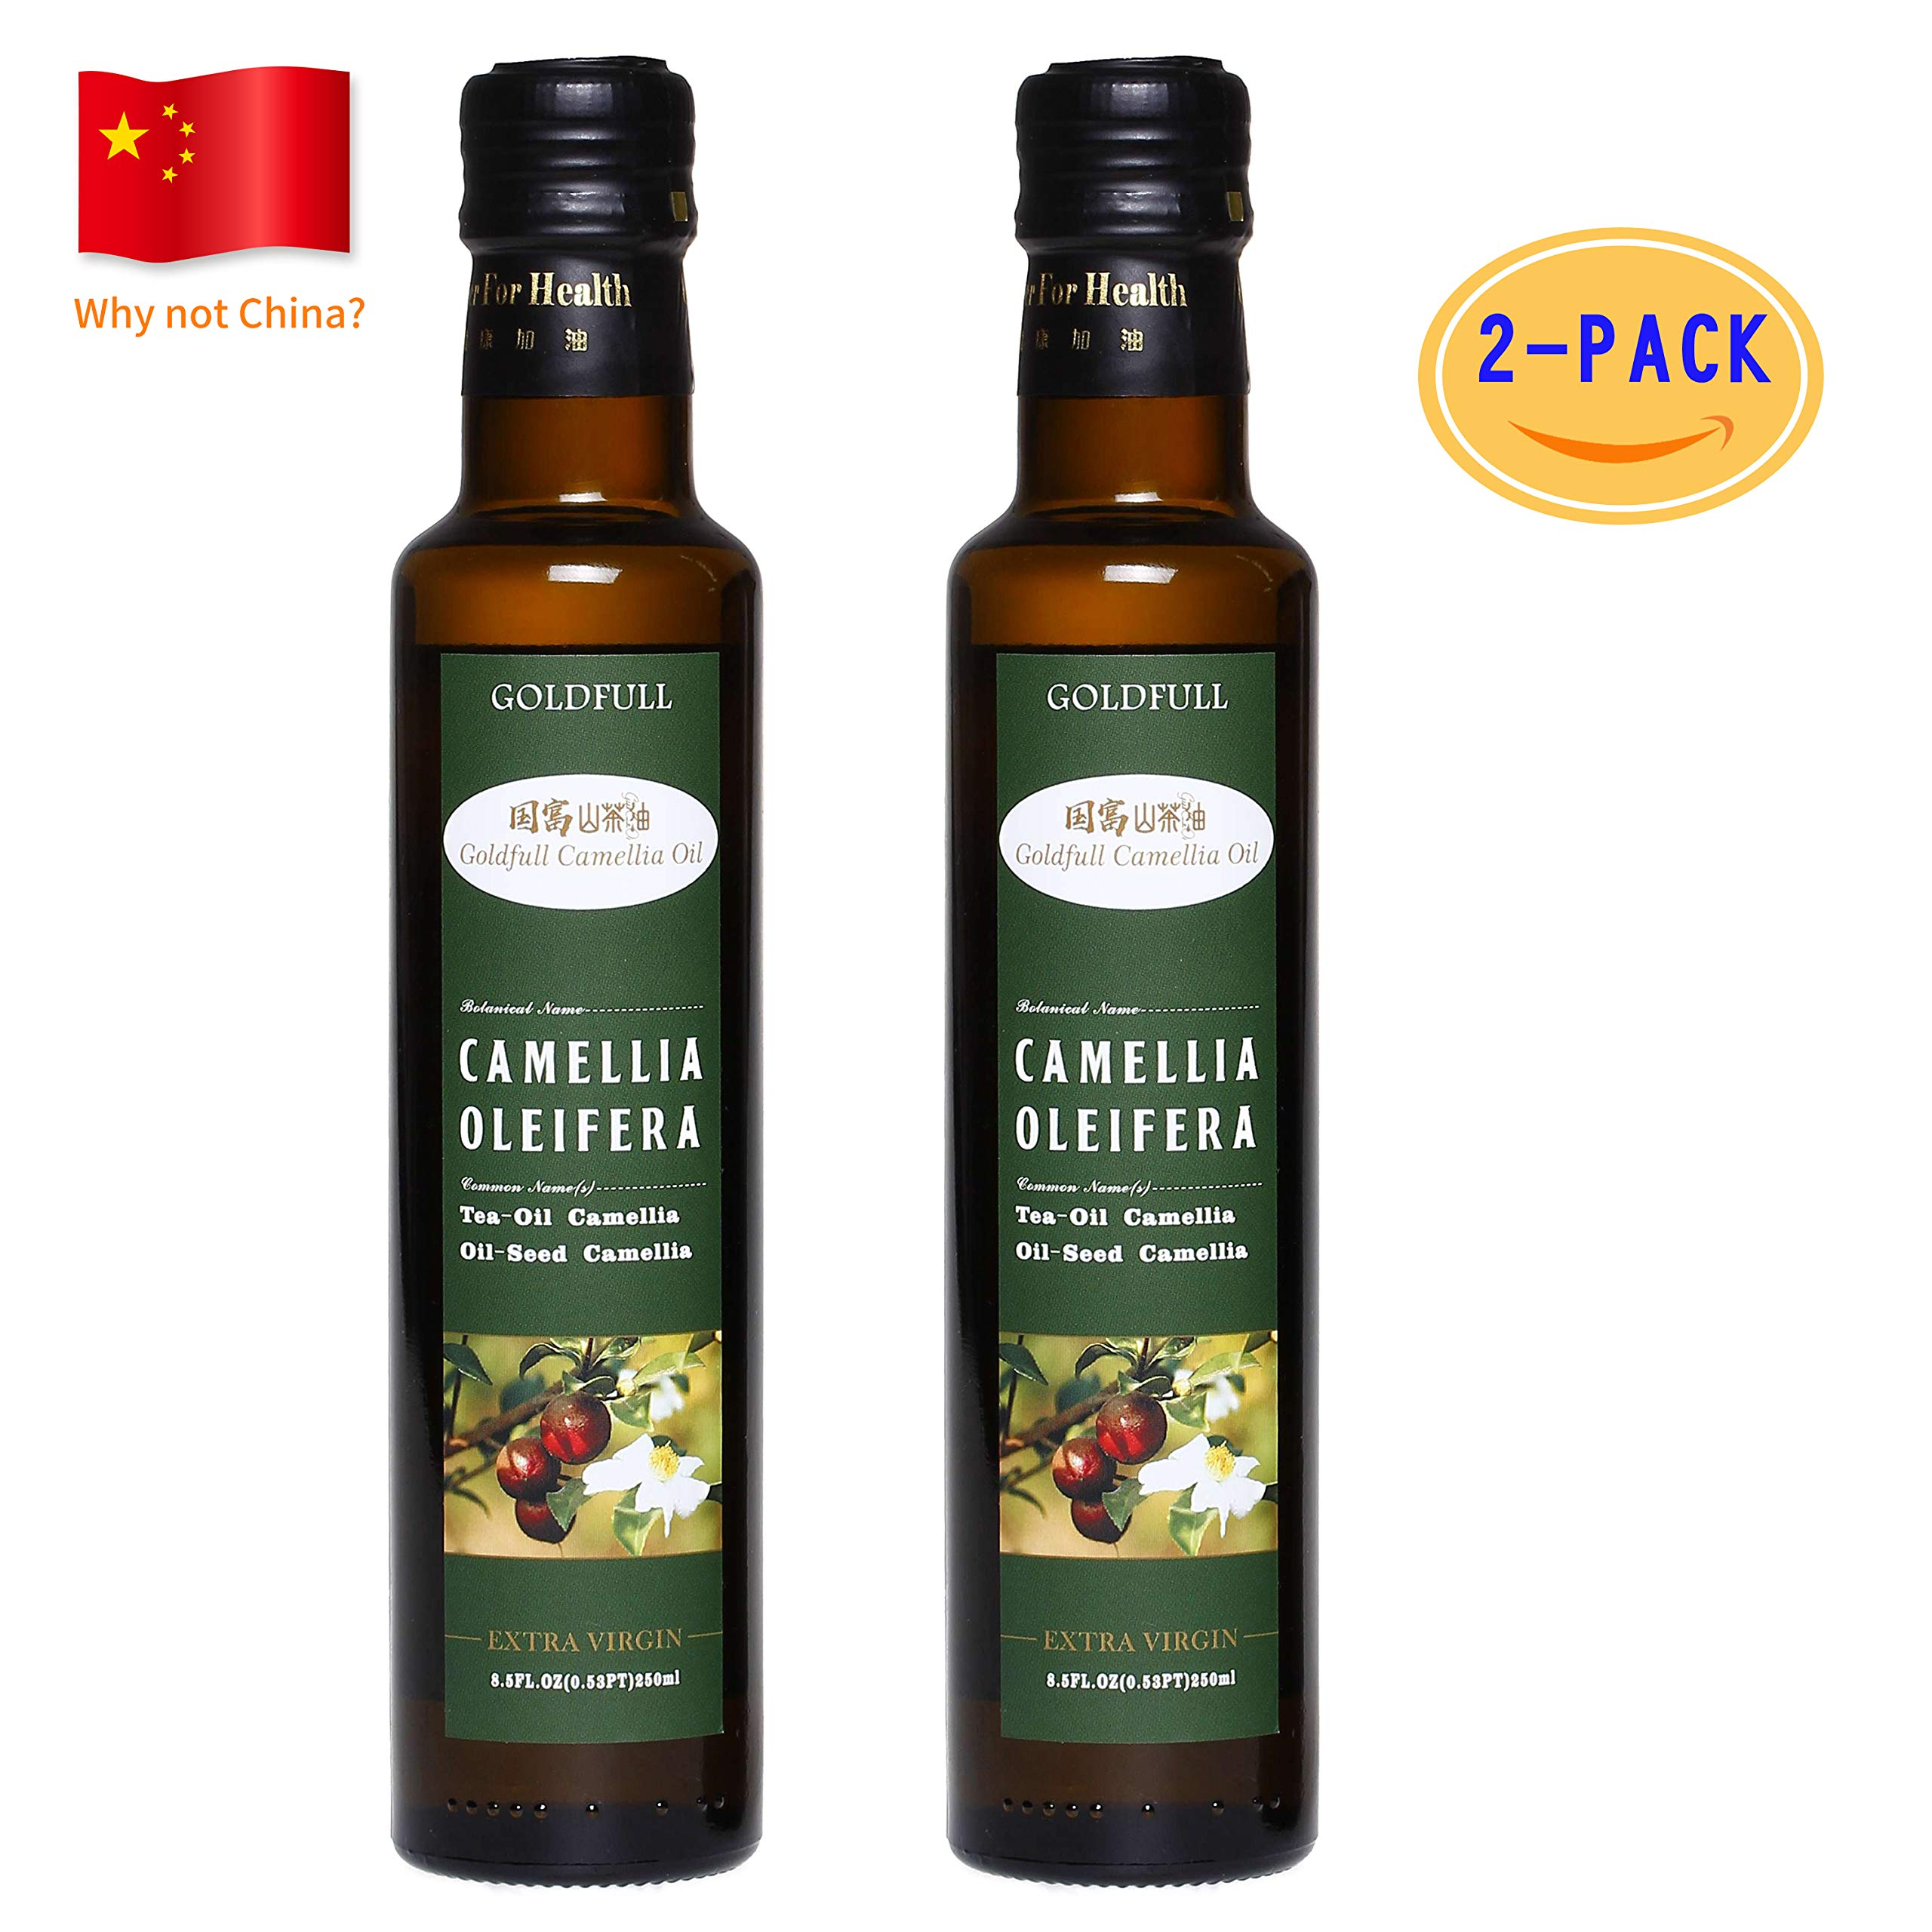 Goldfull Camellia Oil,Tea Seed Oil,Camellia Seed Oil, Cold Pressed Extra Virgin Cooking Oil,Camellia Oleifera Oil, Chinese Olive Oil, Natural Flavor, Current Harvest,250ml 2 Pack by Goldfull Camellia Oil